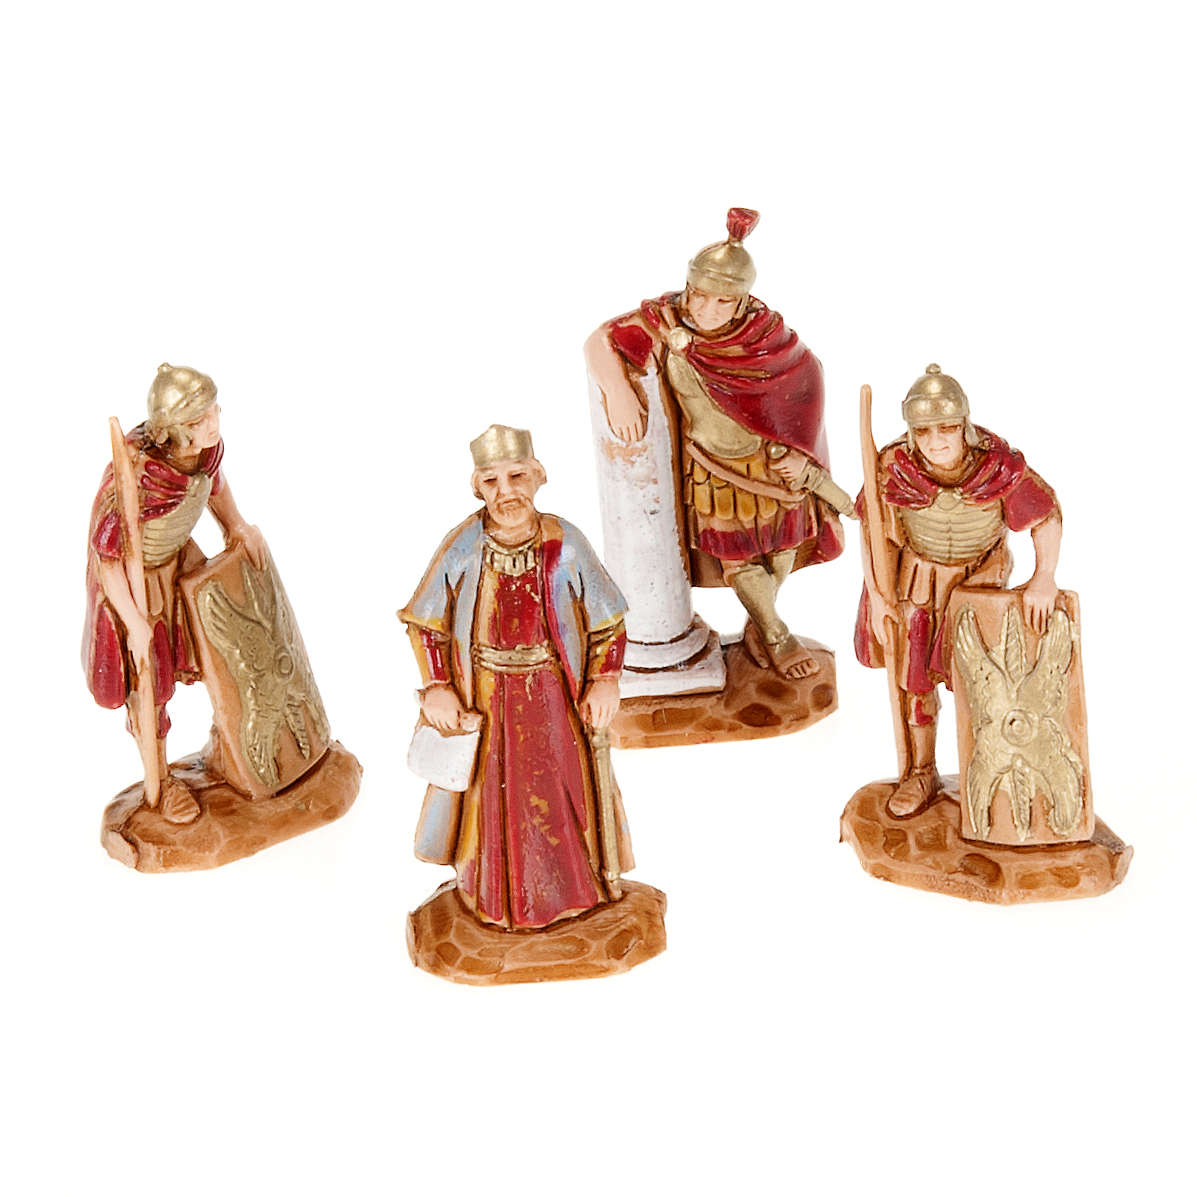 Nativity figurine, King Herod with Roman soldiers, 4 pieces 3.5cm 4